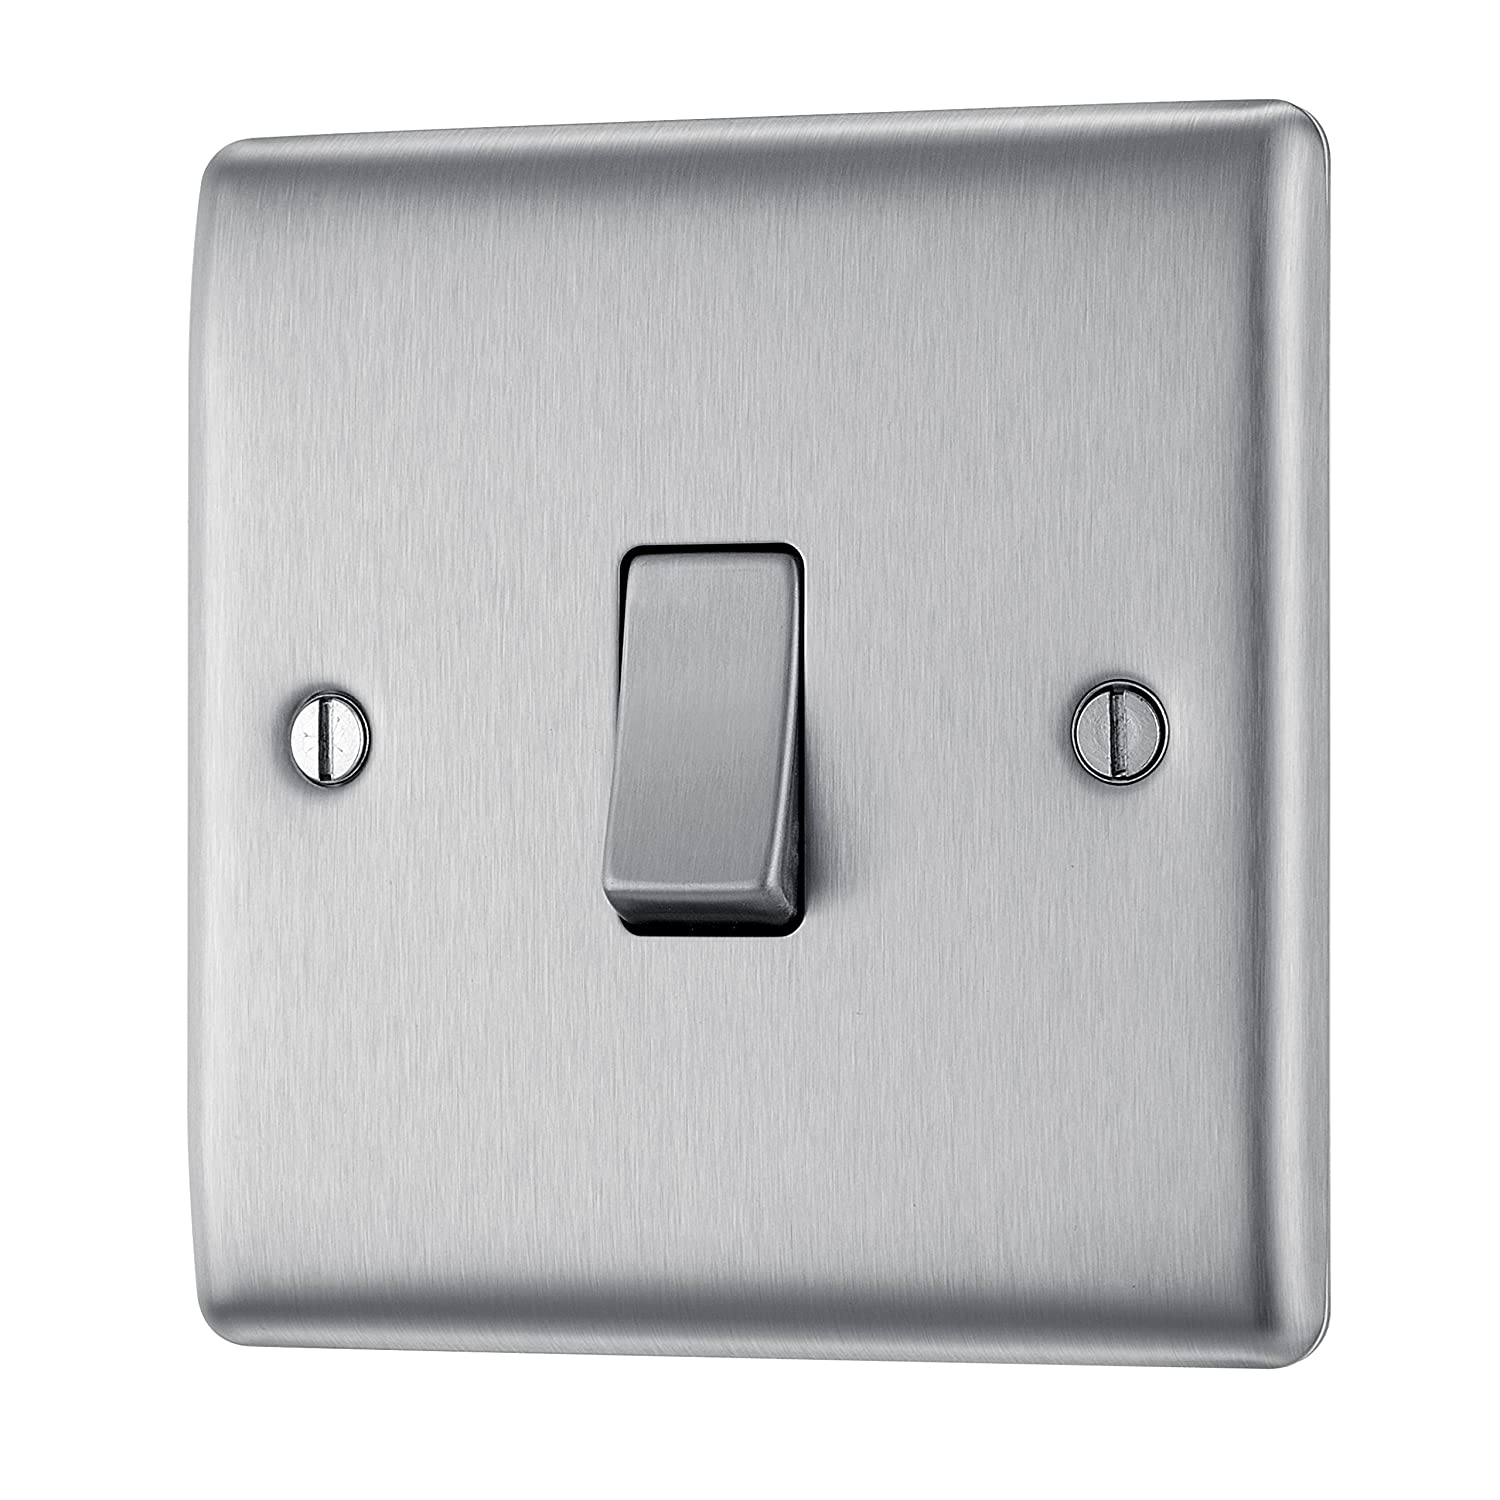 BG Electrical NBS12 10AX Single 2-Way Metal Brushed Steel Light ...